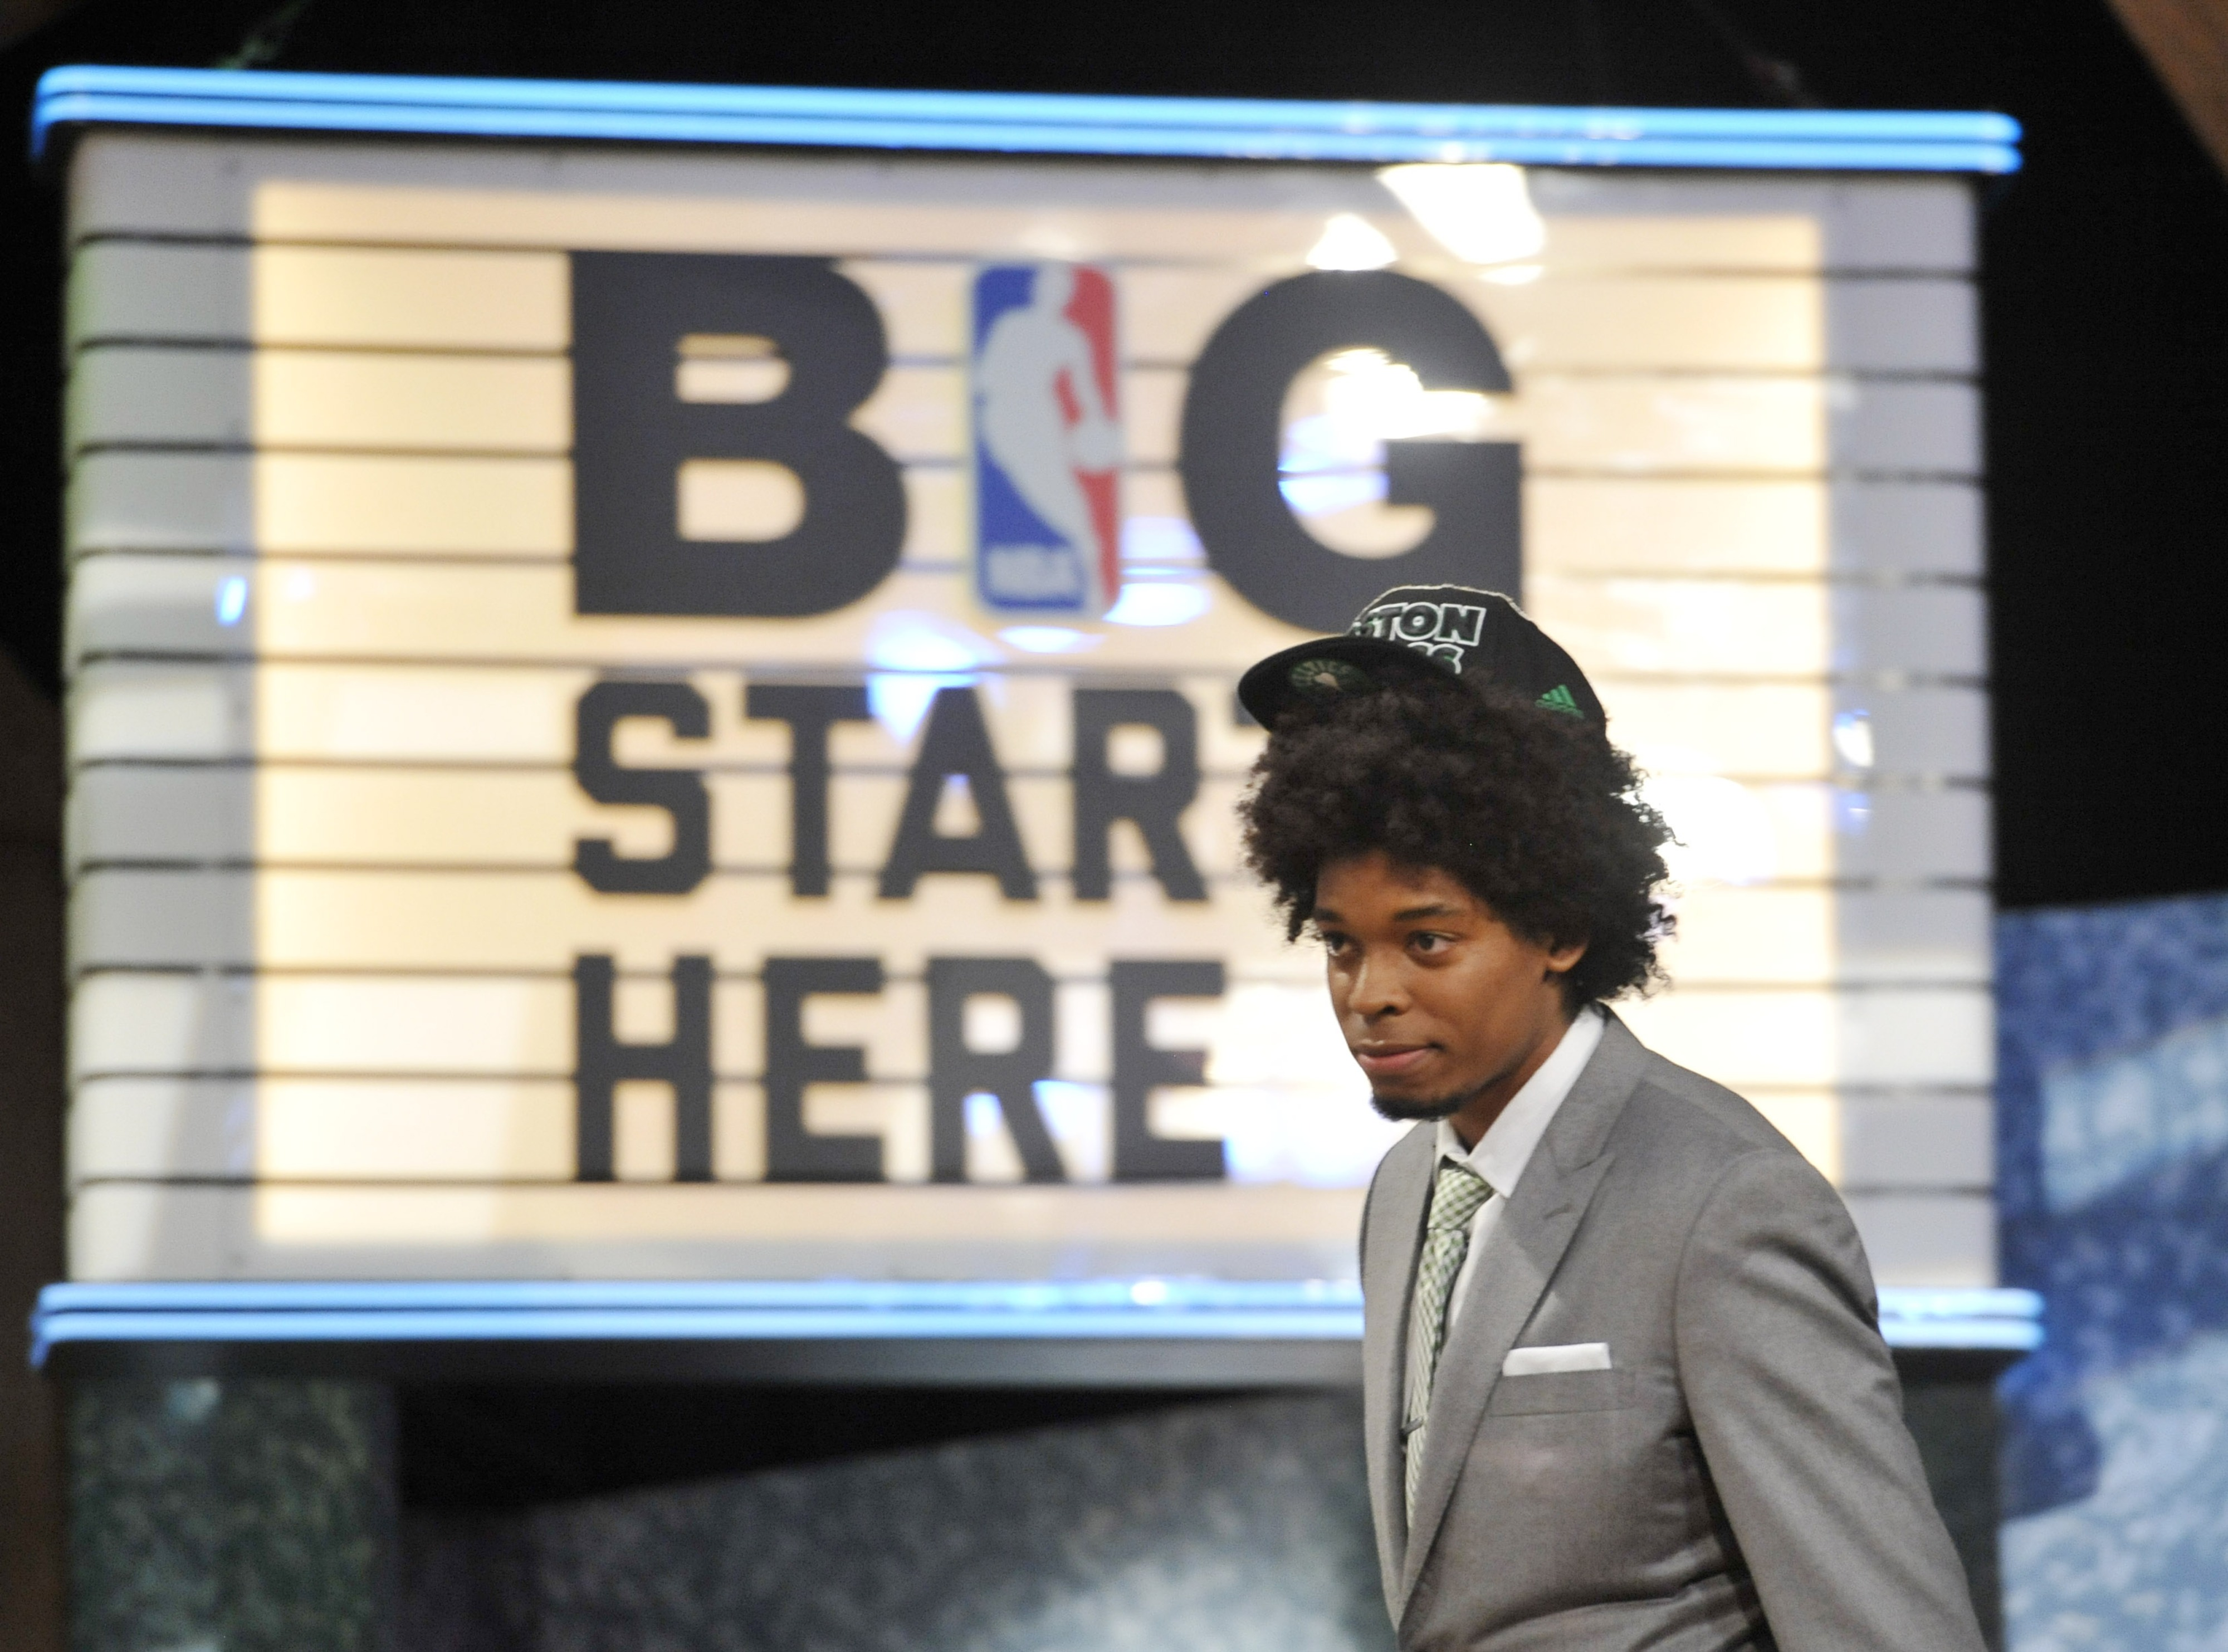 NBA Draft 2013: Lucas Nogueira traded to Atlanta Hawks for 18th pick and Jared Cunningham